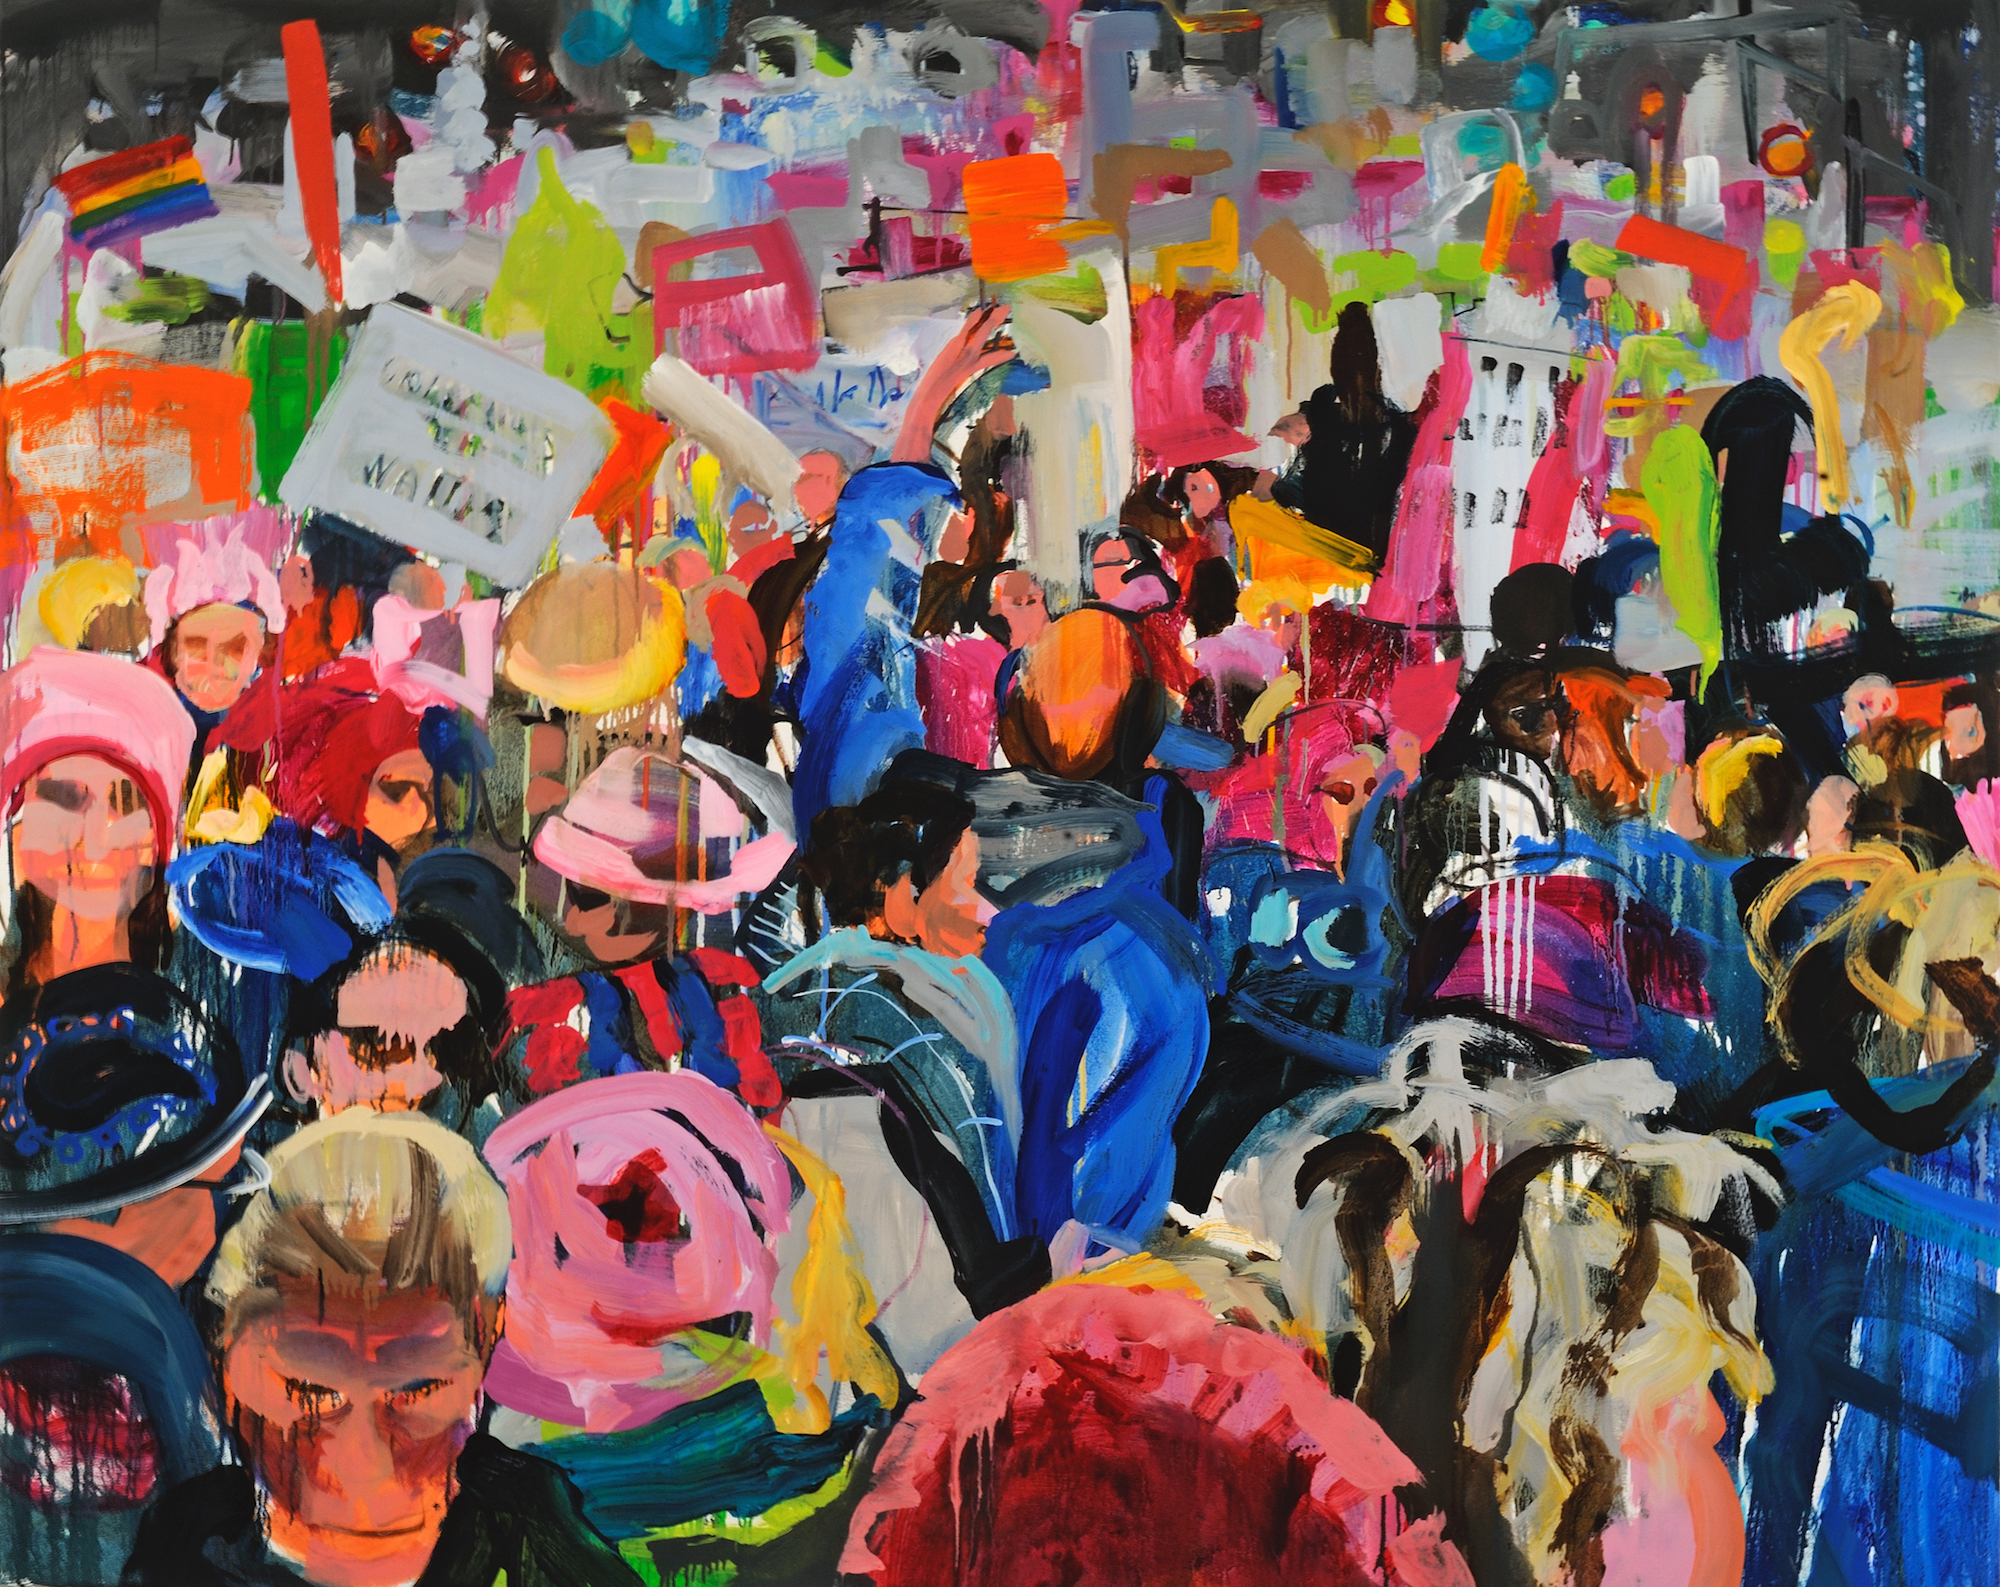 """Day 2, oil on canvas. This painting is also a part of """"Catalyzed,"""" documenting the Women's March and the intensity of emotions that have come with the wave of women ready to fight for their rights. Strength and unity are paired with a controlled sense of panic in these paintings. The brush strokes allude to the sheer magnitude of movement in the crowds, but also give each person pictured a unique personality and tangle of emotions."""